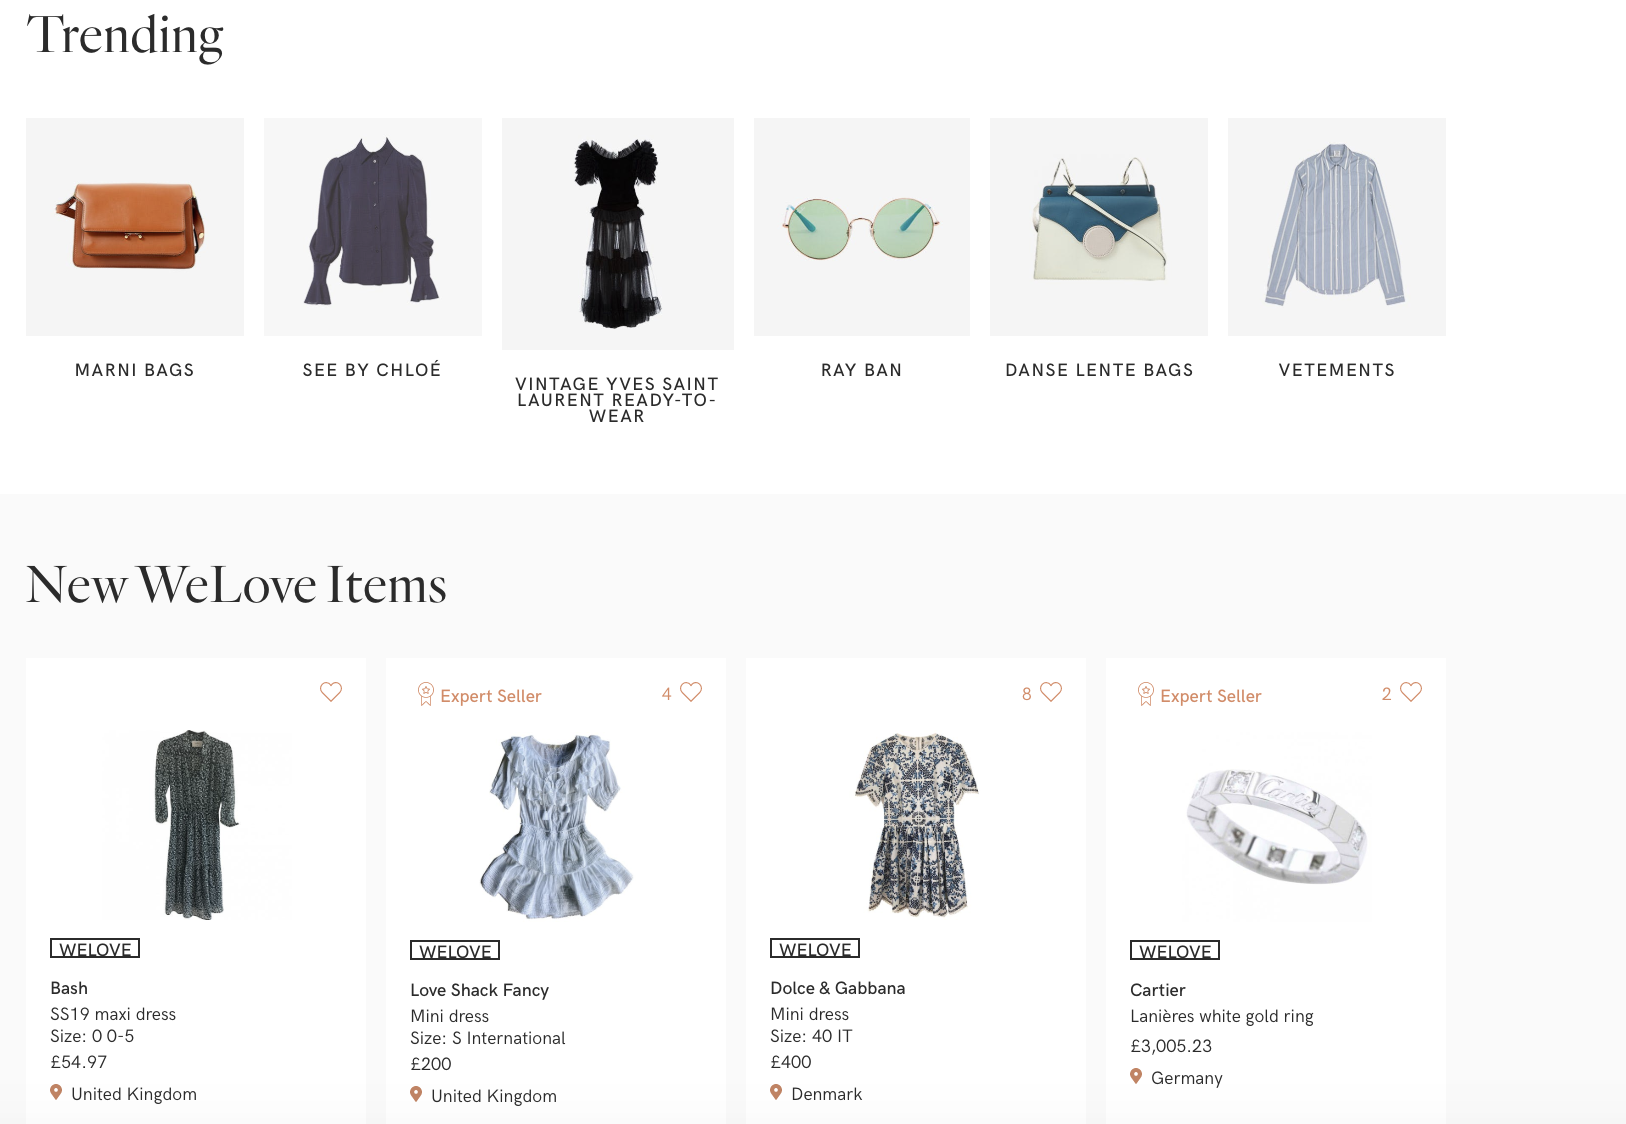 Vestiaire Collective - Vestiaire Collective is another online marketplace to buy and sell authenticated pre-owned luxury fashion. Unlike The RealReal, its team of in-house experts authenticate items once sold vs. prior to listed on the site.